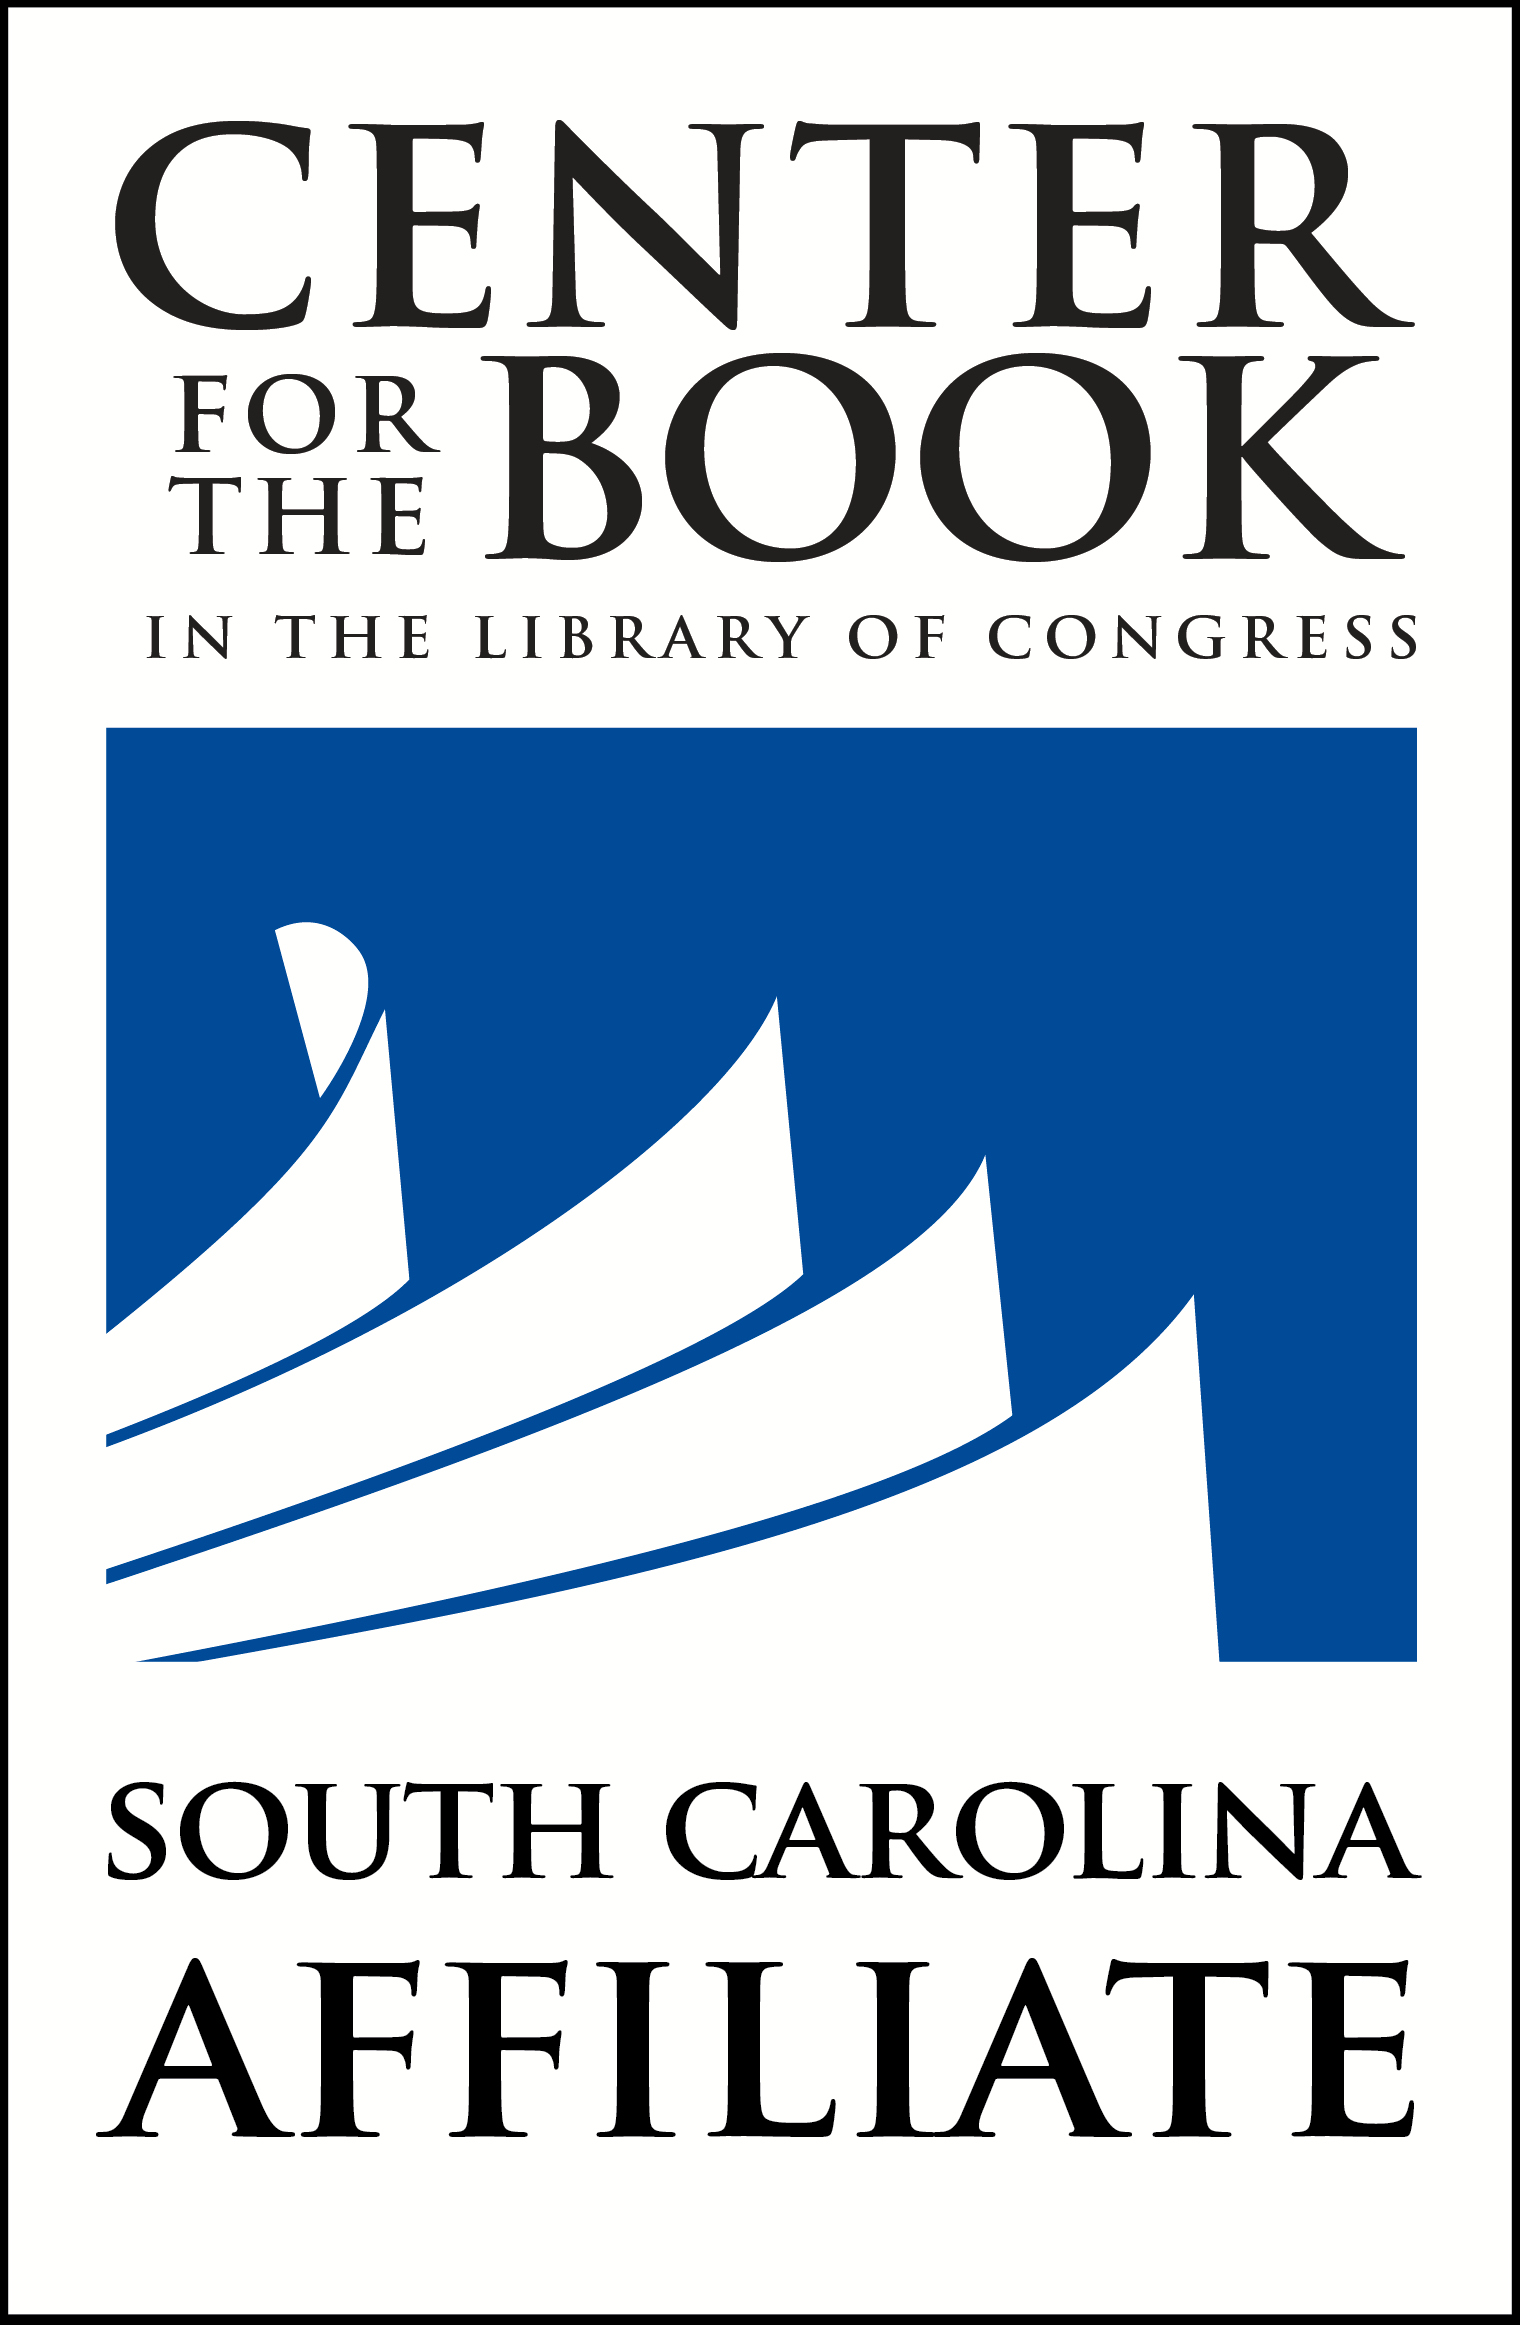 Logo for the Library of Congress Center for the Book Affiliate